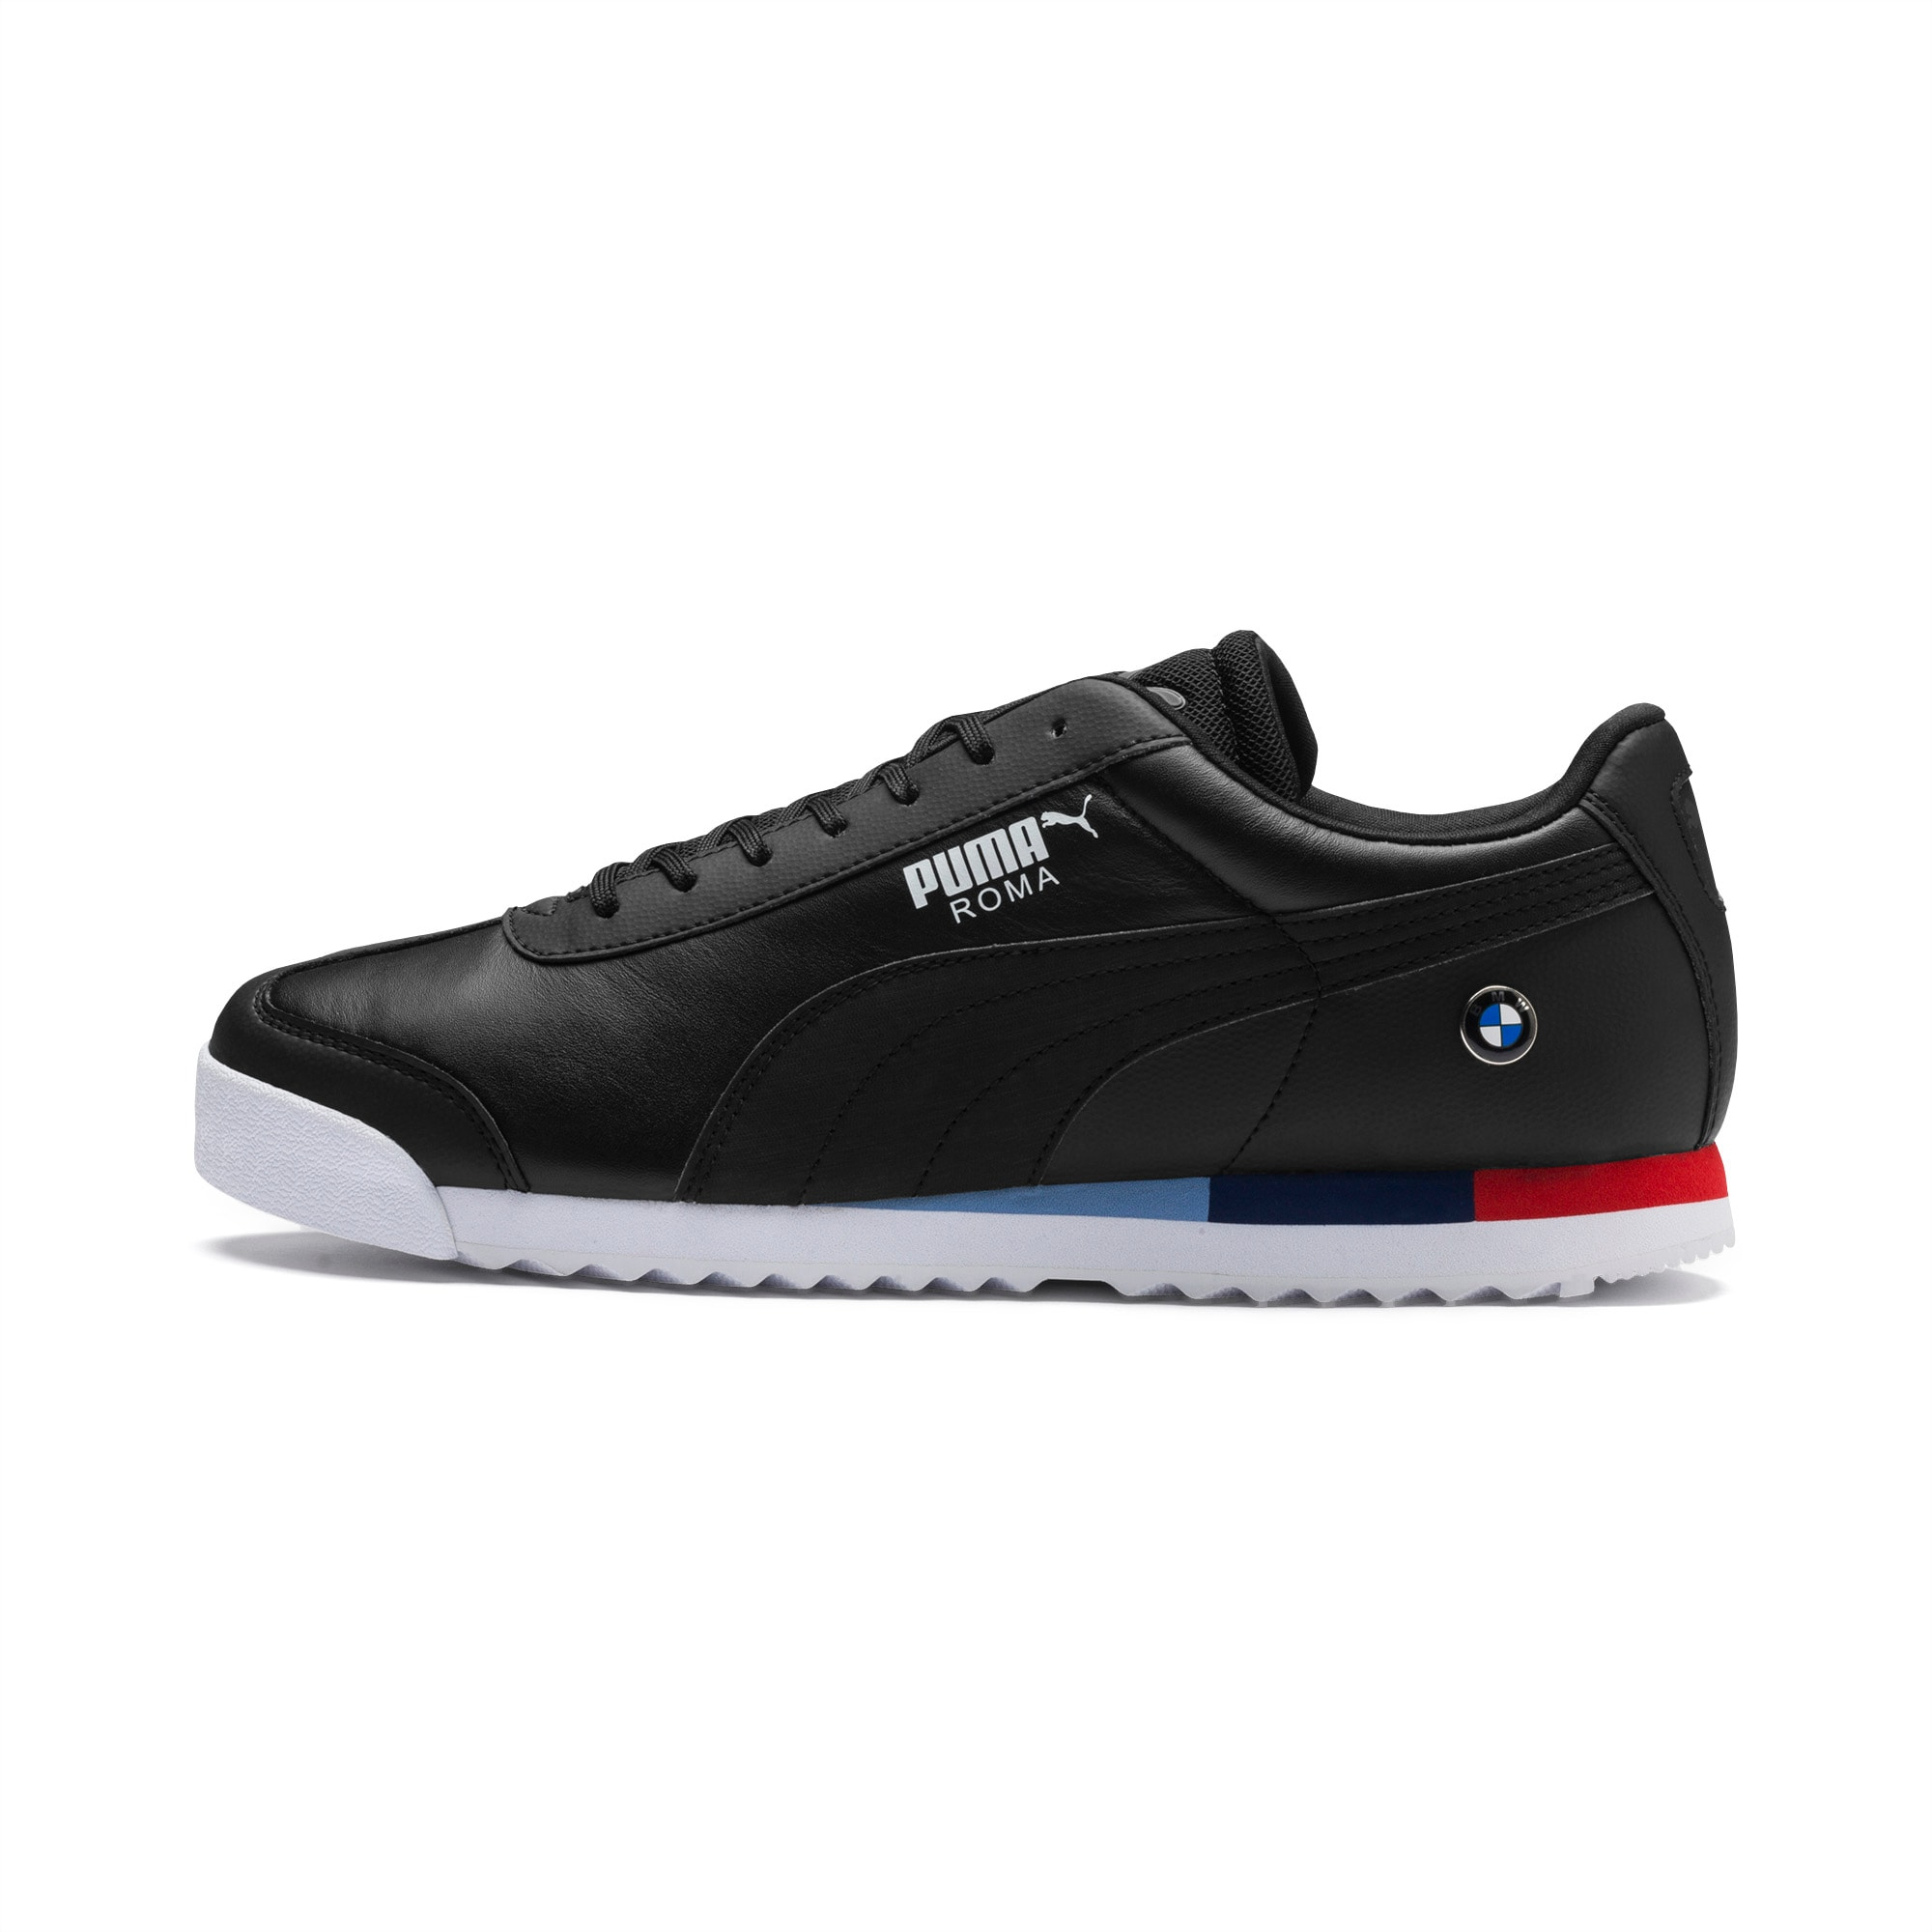 BMW MMS Roma Men's Trainers